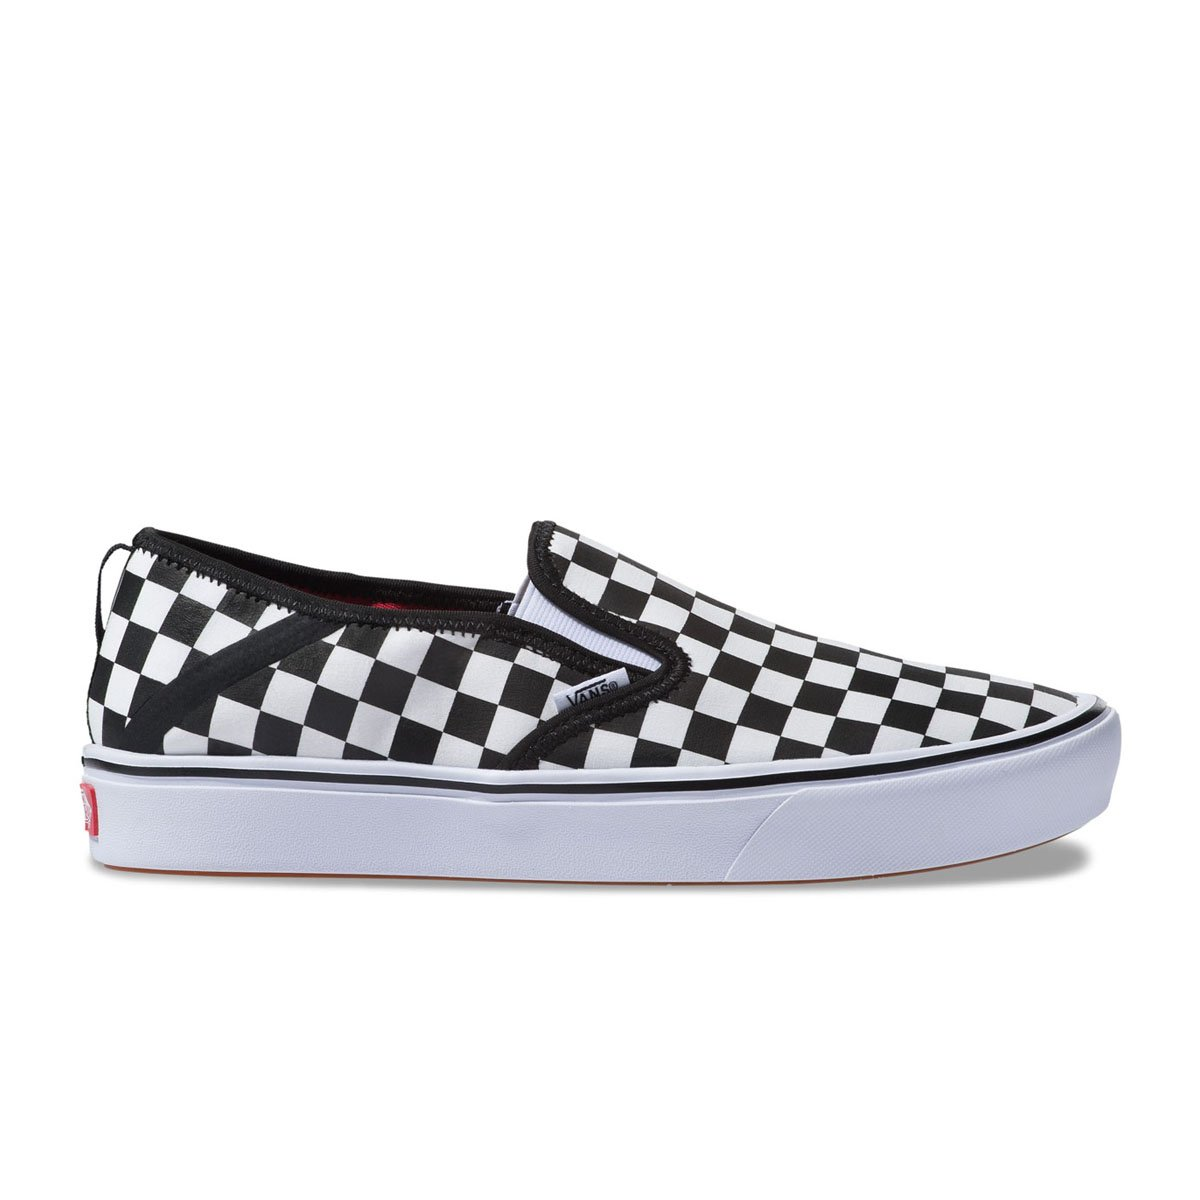 COMFYCUSH SLIP-ON SF